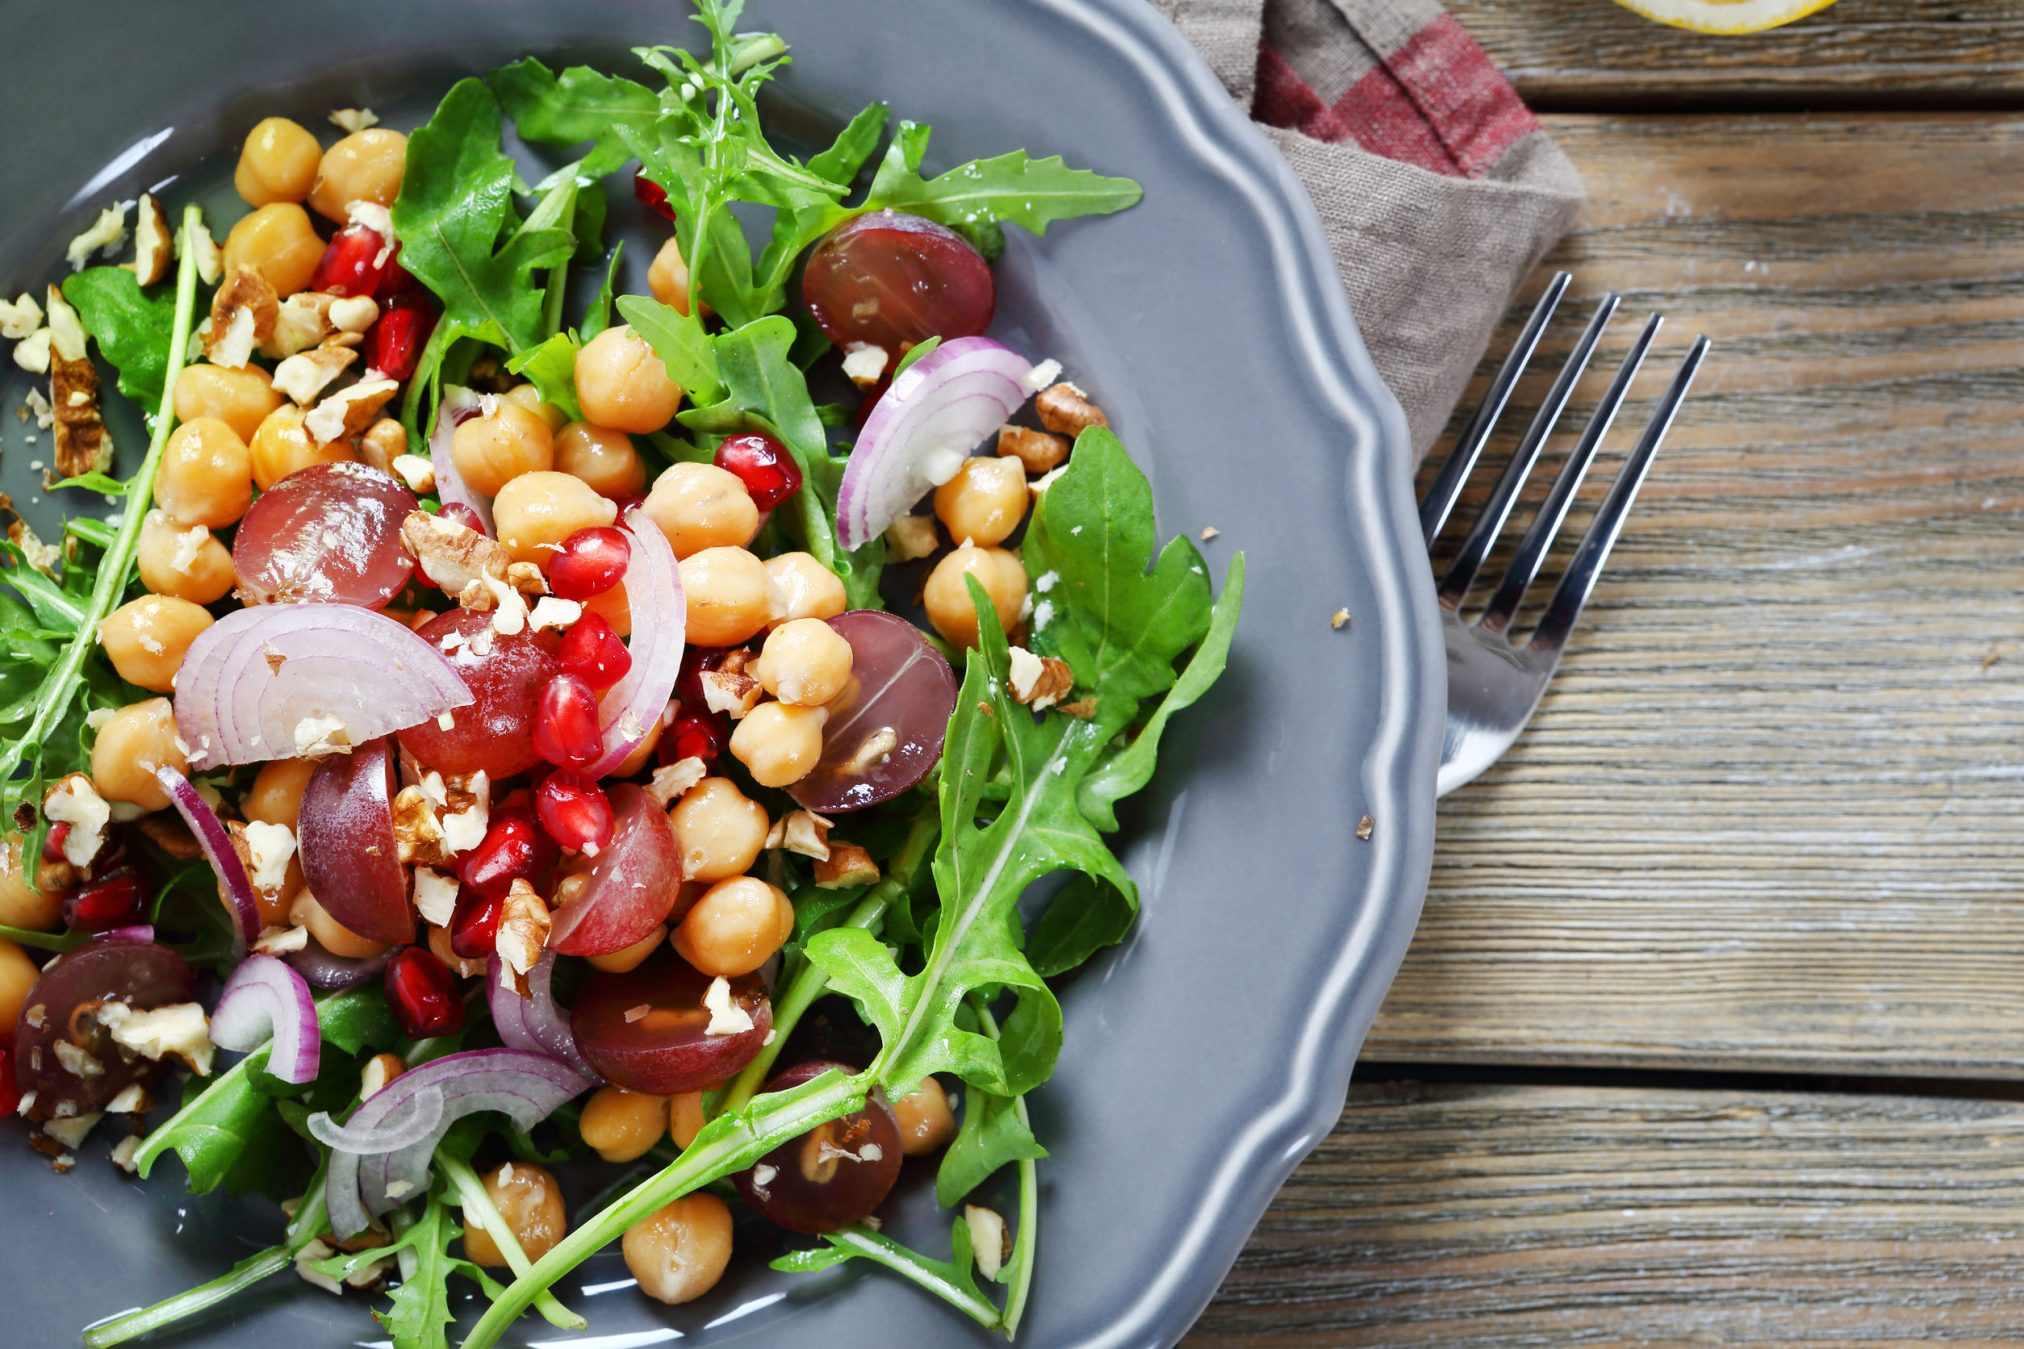 salad with chickpeas and nuts